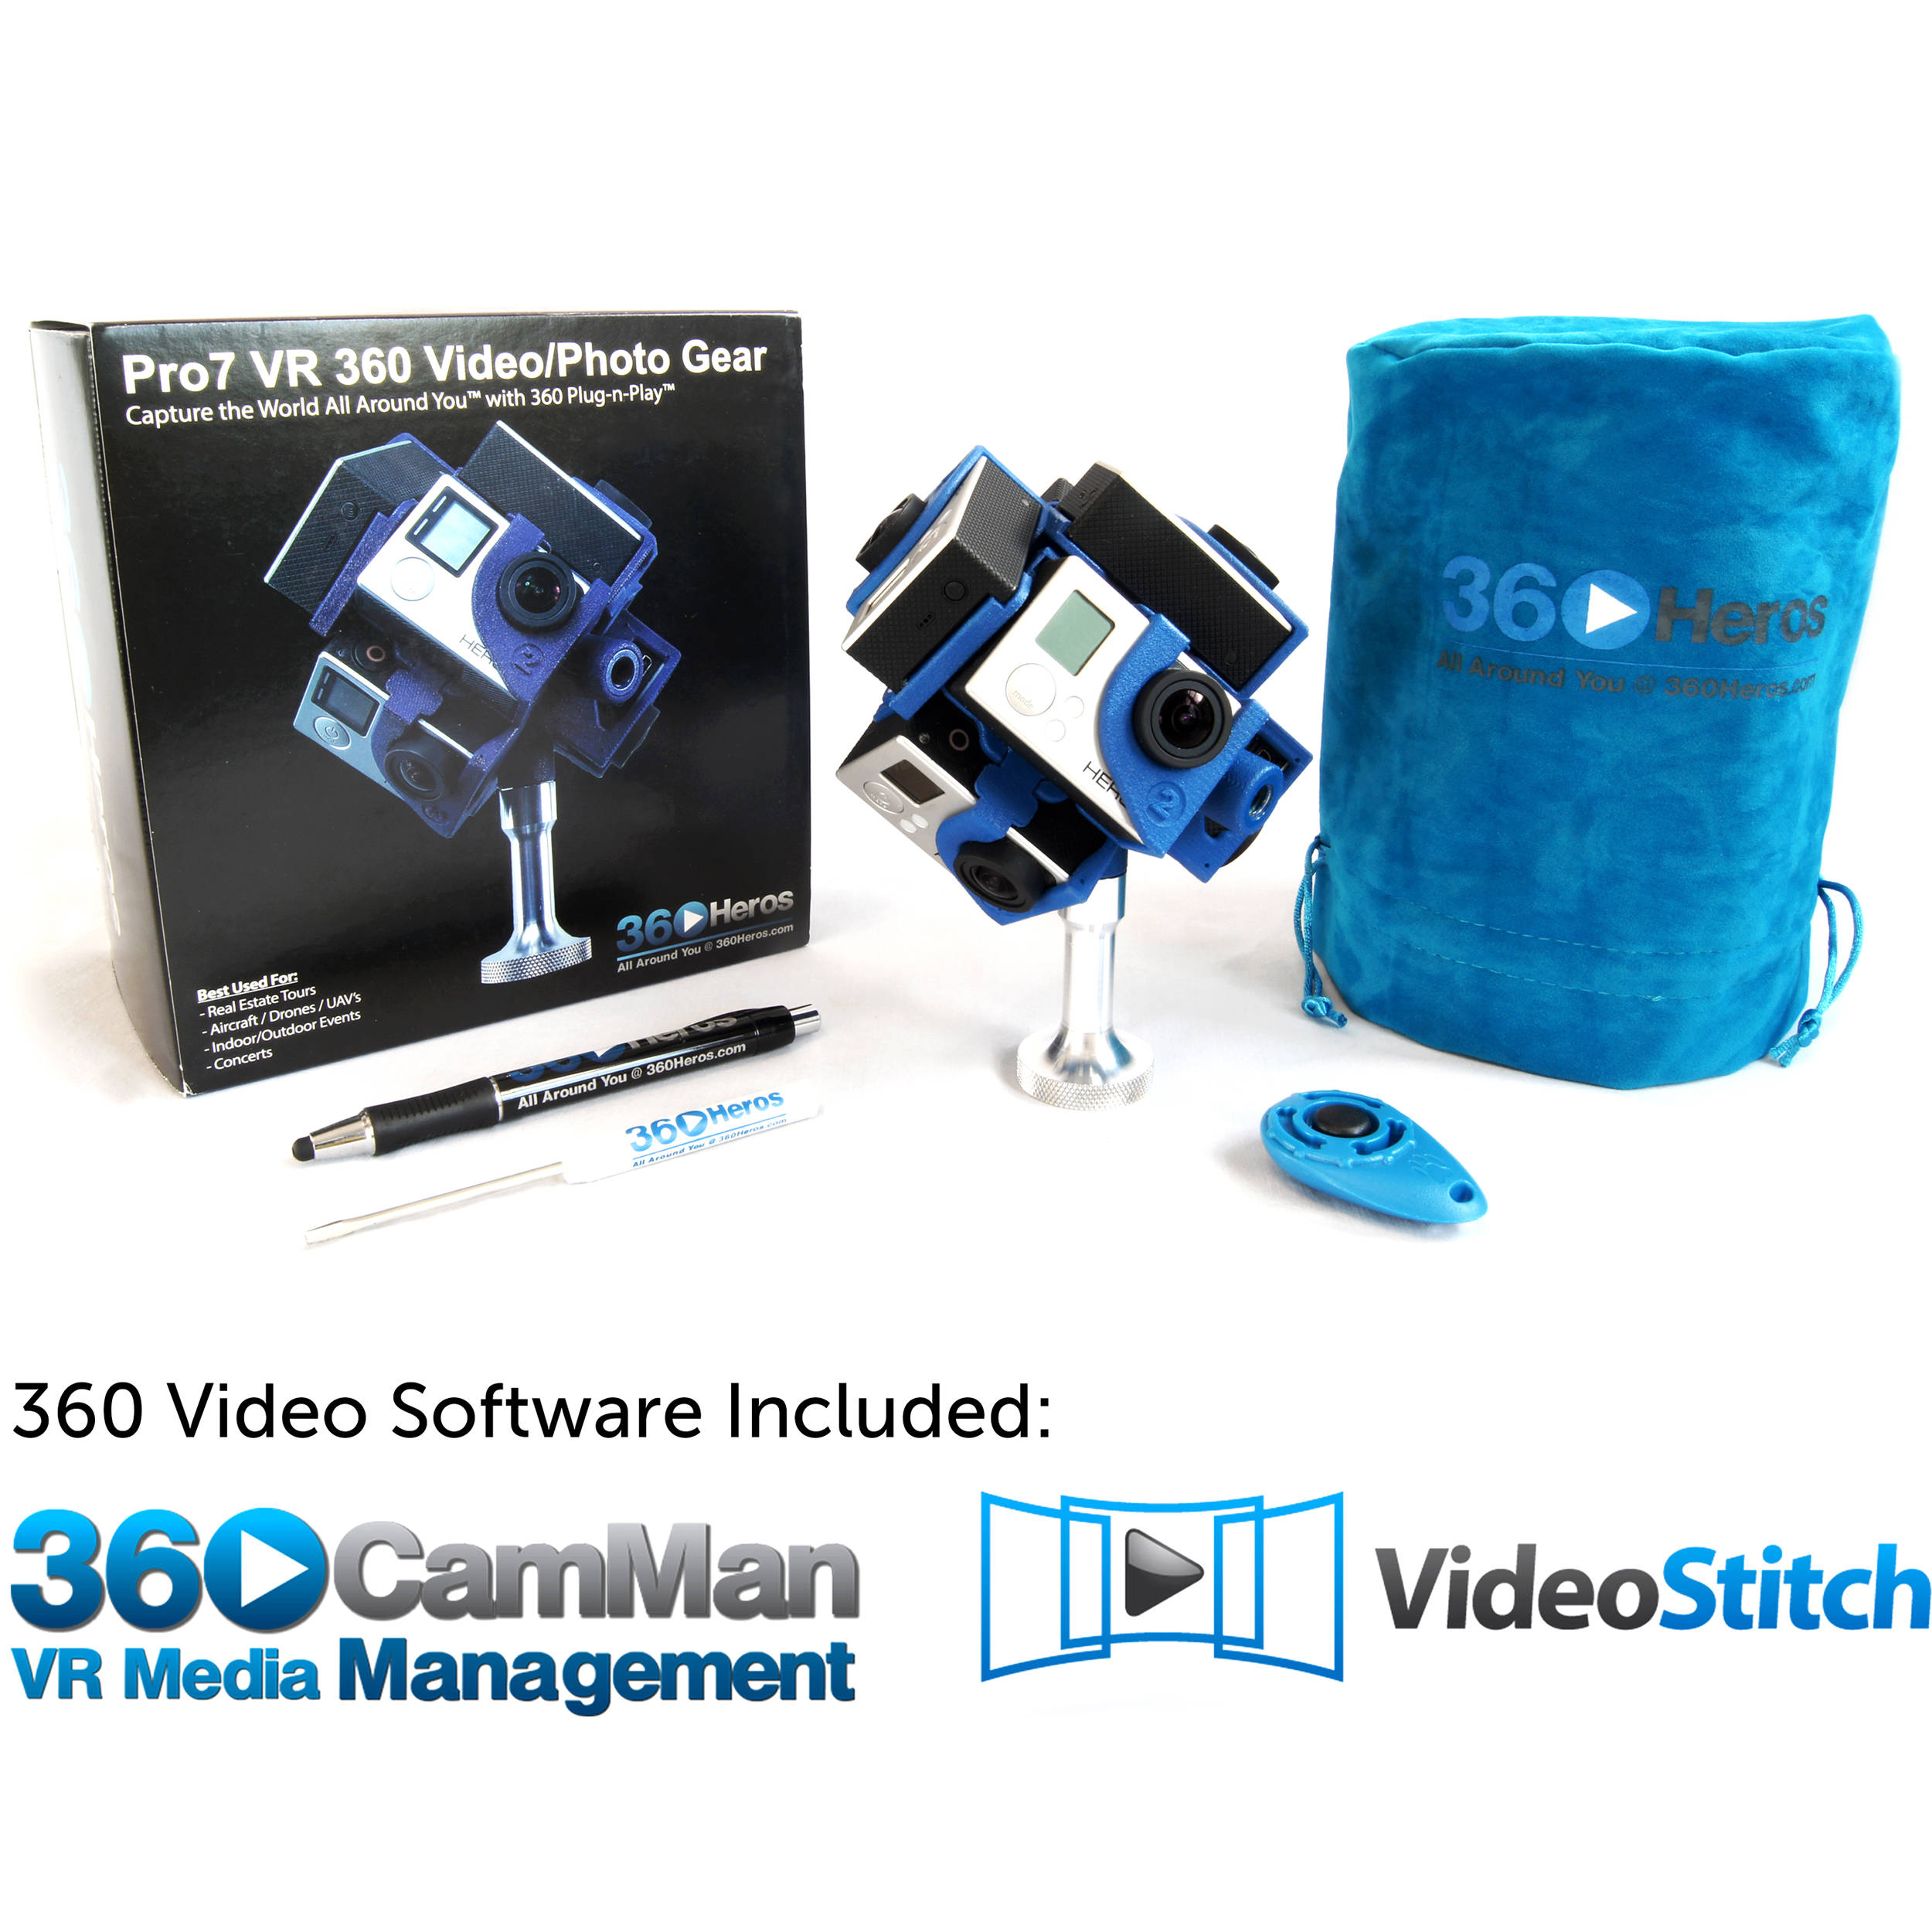 5ec5013ae5f 360RIZE Pro7 v2 360 Plug-n-Play Holder Kit with 360CamMan and Video-Stitch  Studio